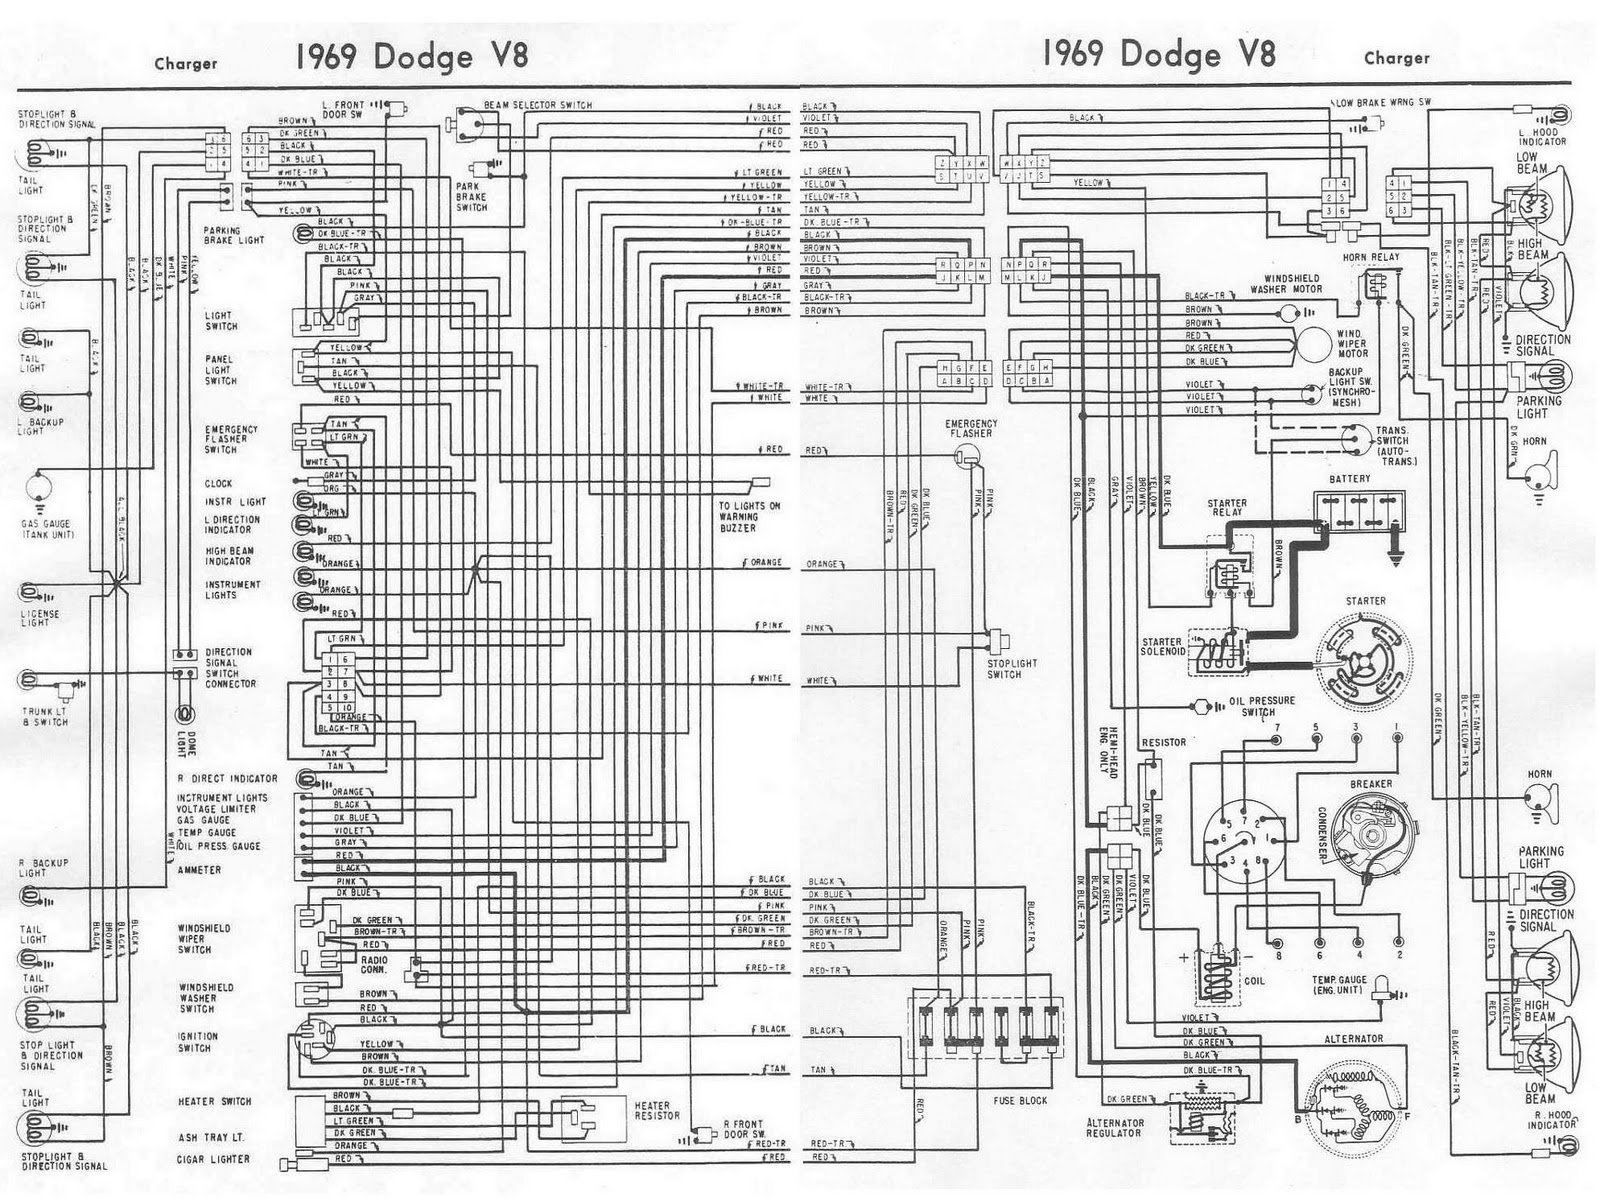 Dodge Power Outlet Diagram Wiring from 4.bp.blogspot.com